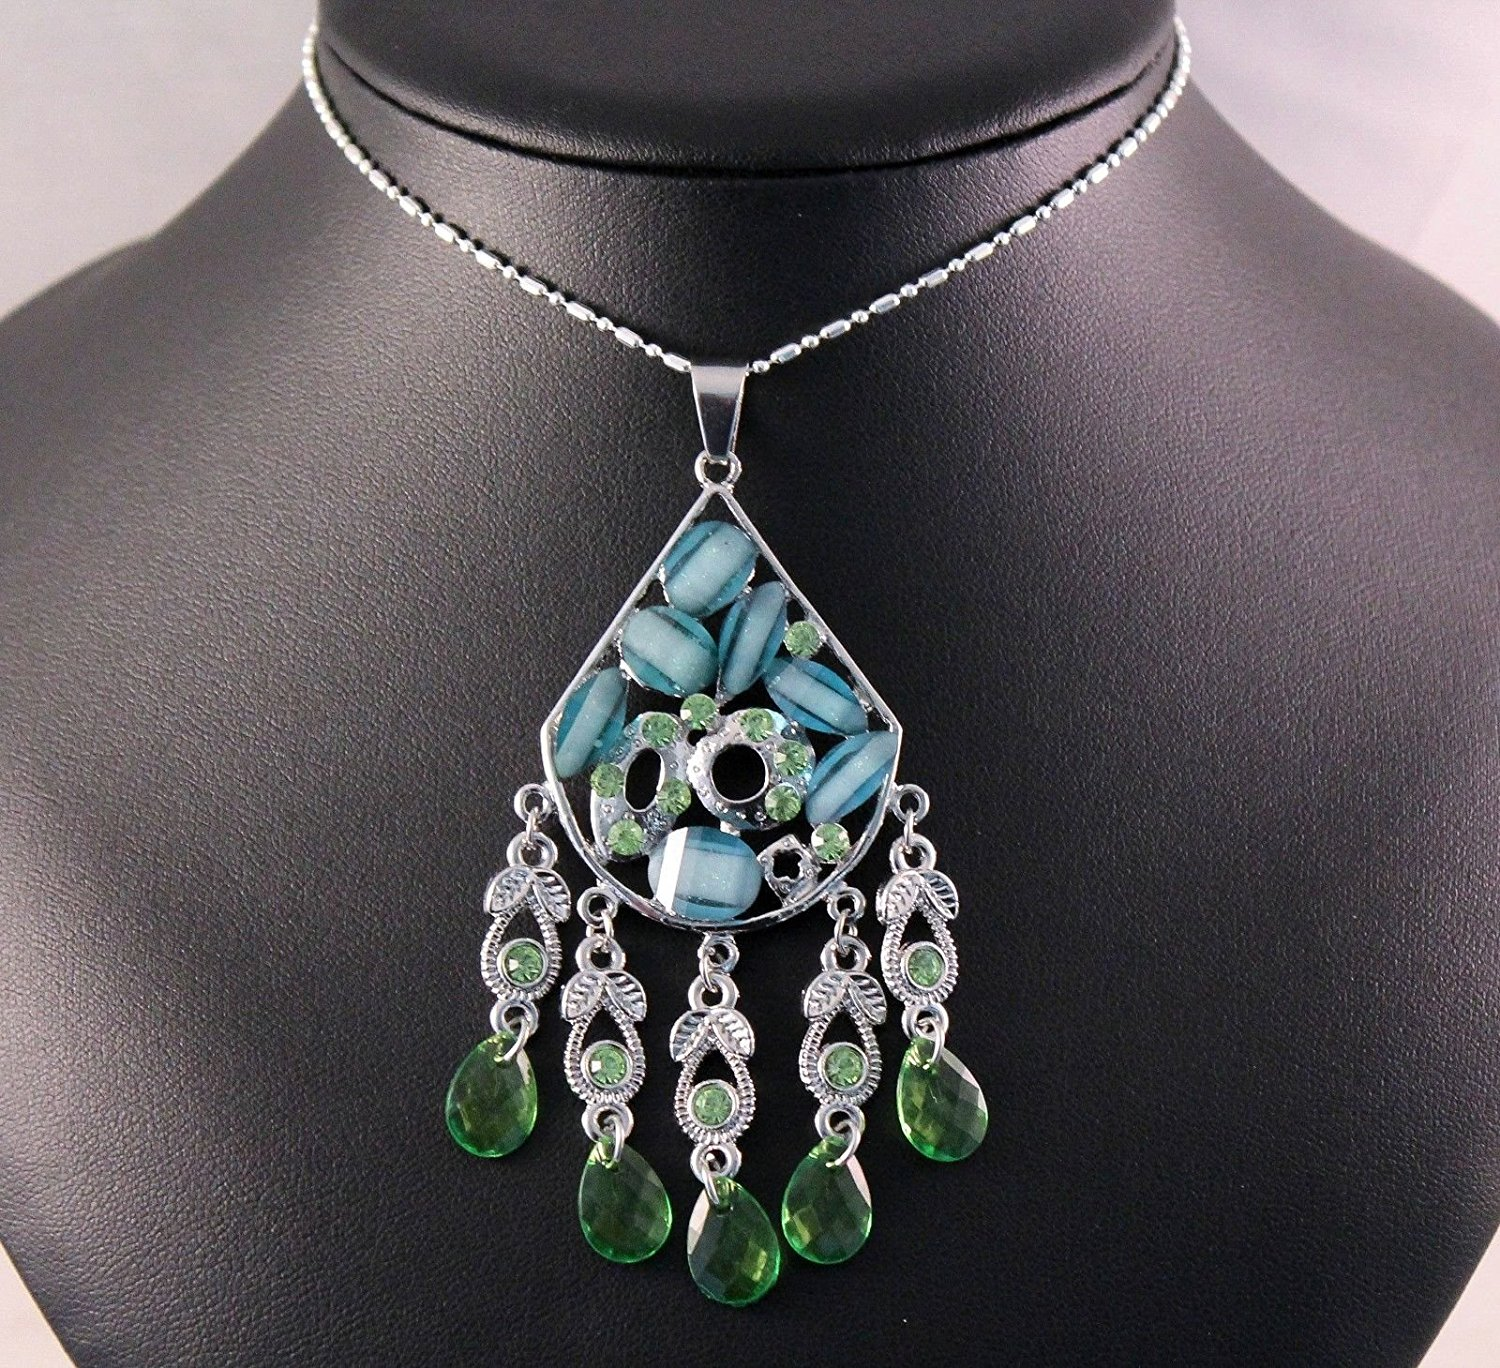 Green Gemstone Alloy Ribbon Statement Necklace with jewelry box